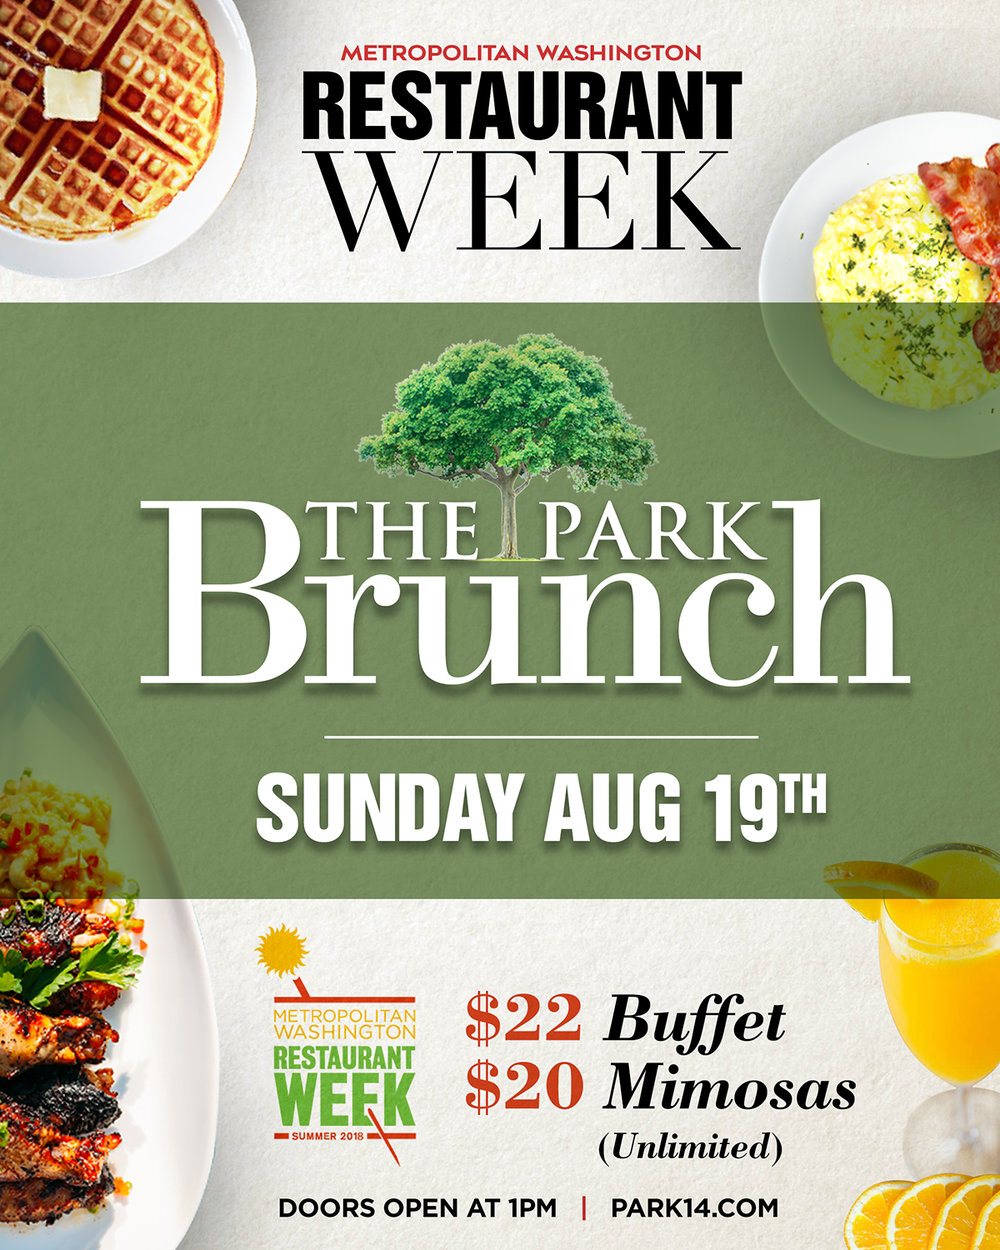 The Park Restaurant Week Sunday Flyer v3.jpg